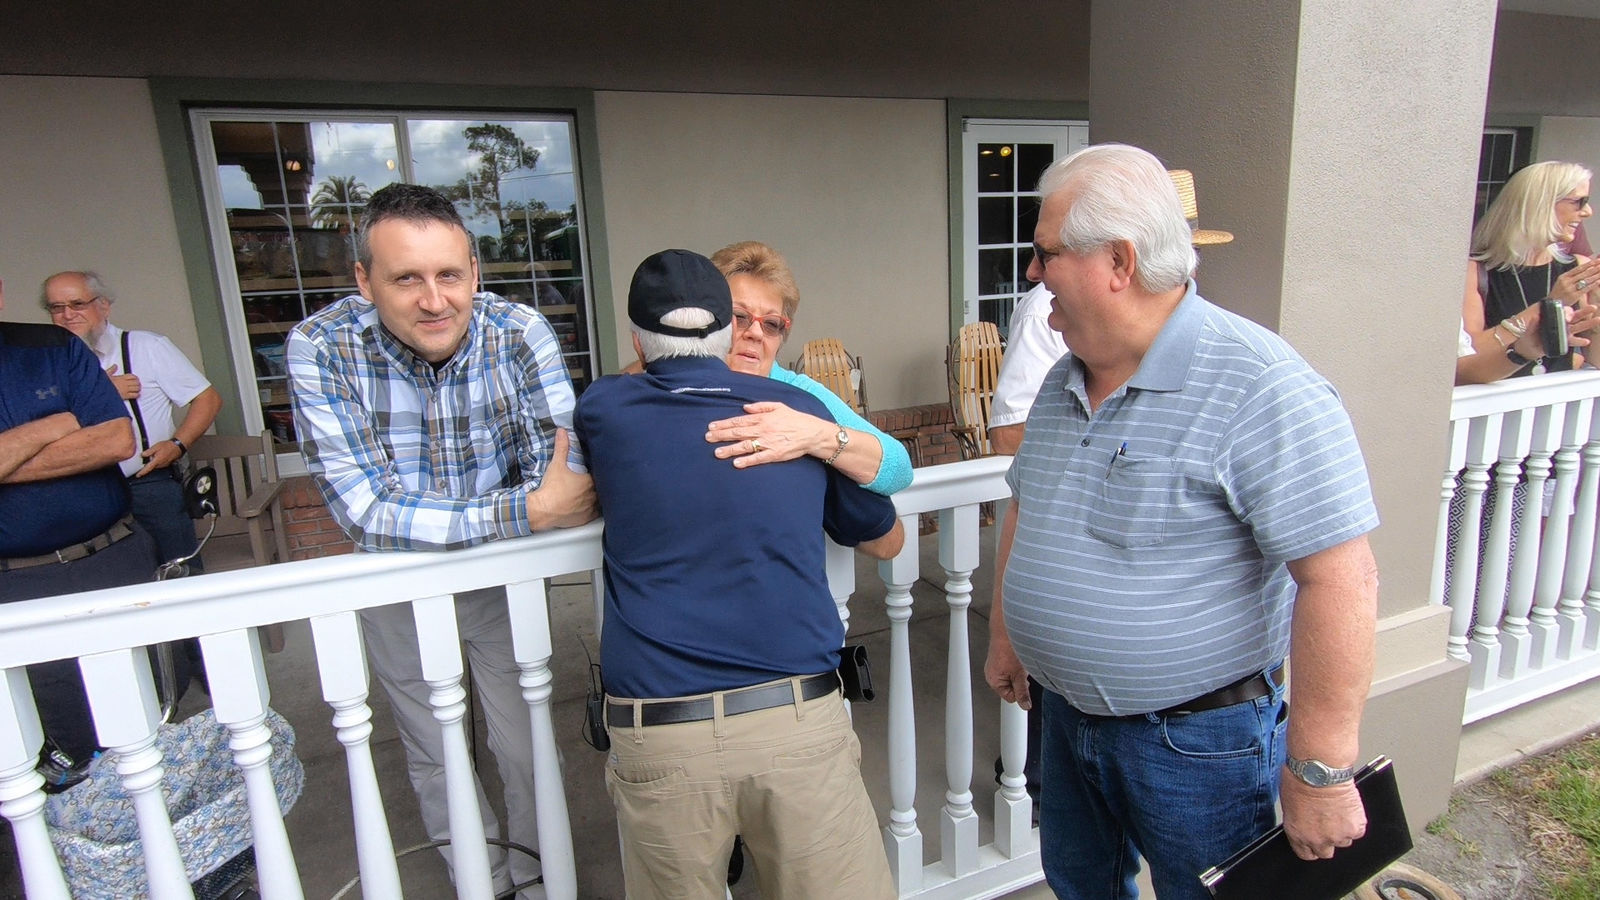 C. Ivan Stoltzfus receives hugs as he finishes his journey near Sarasota, Fla. (WPEC)